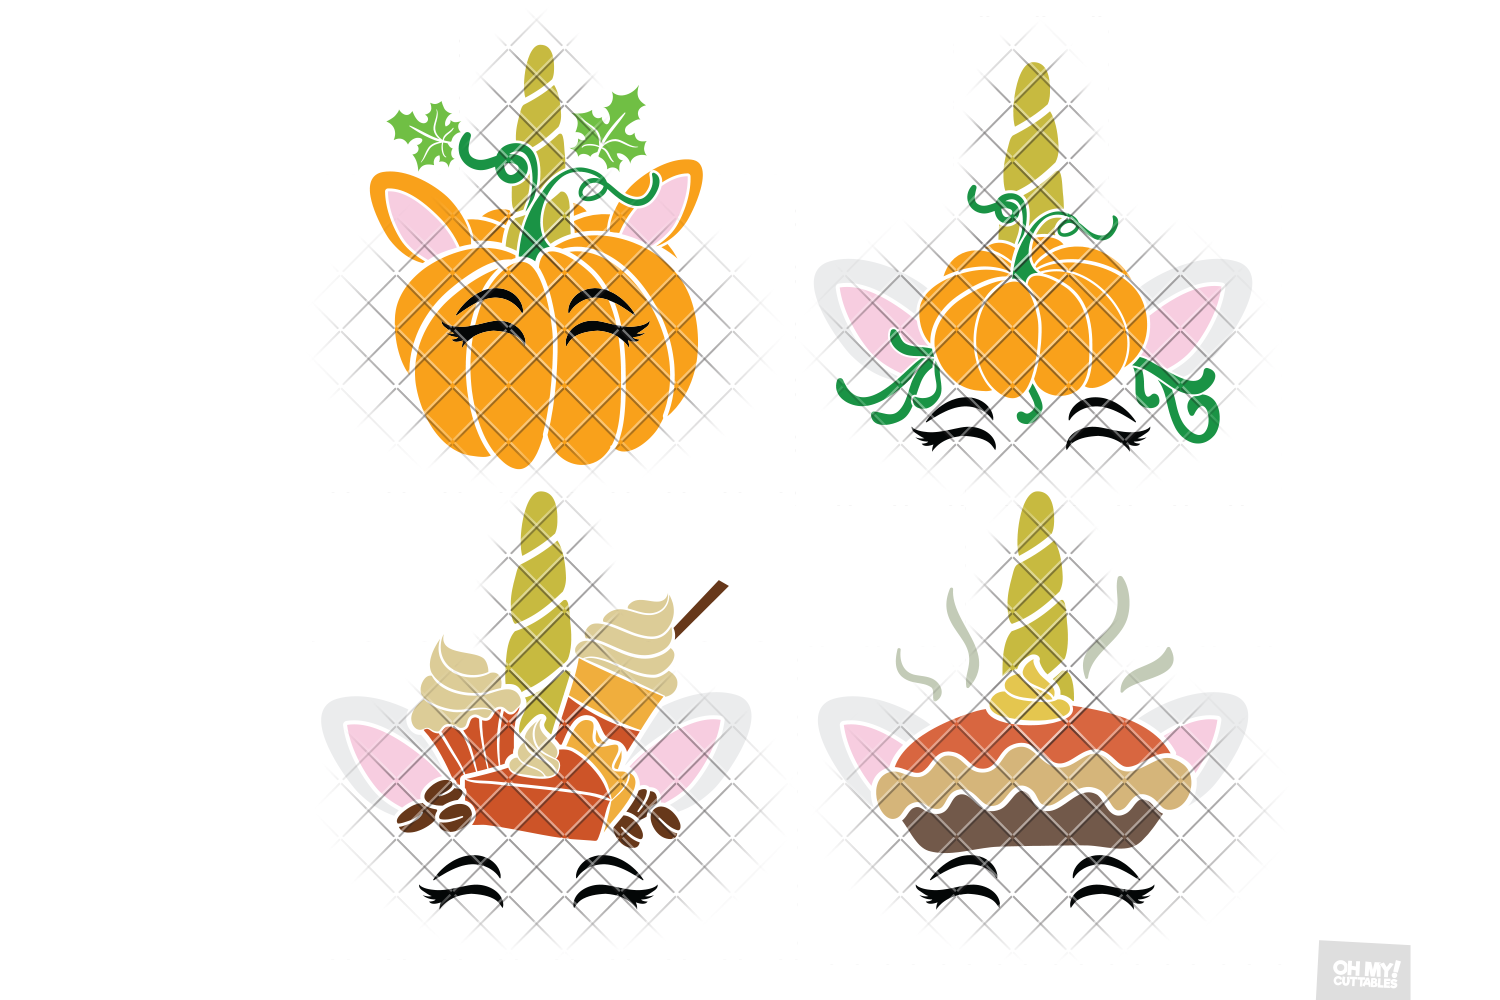 Thanksgiving Unicorn SVG Pumpkin in SVG, DXF, PNG, EPS, JPEG example image 3